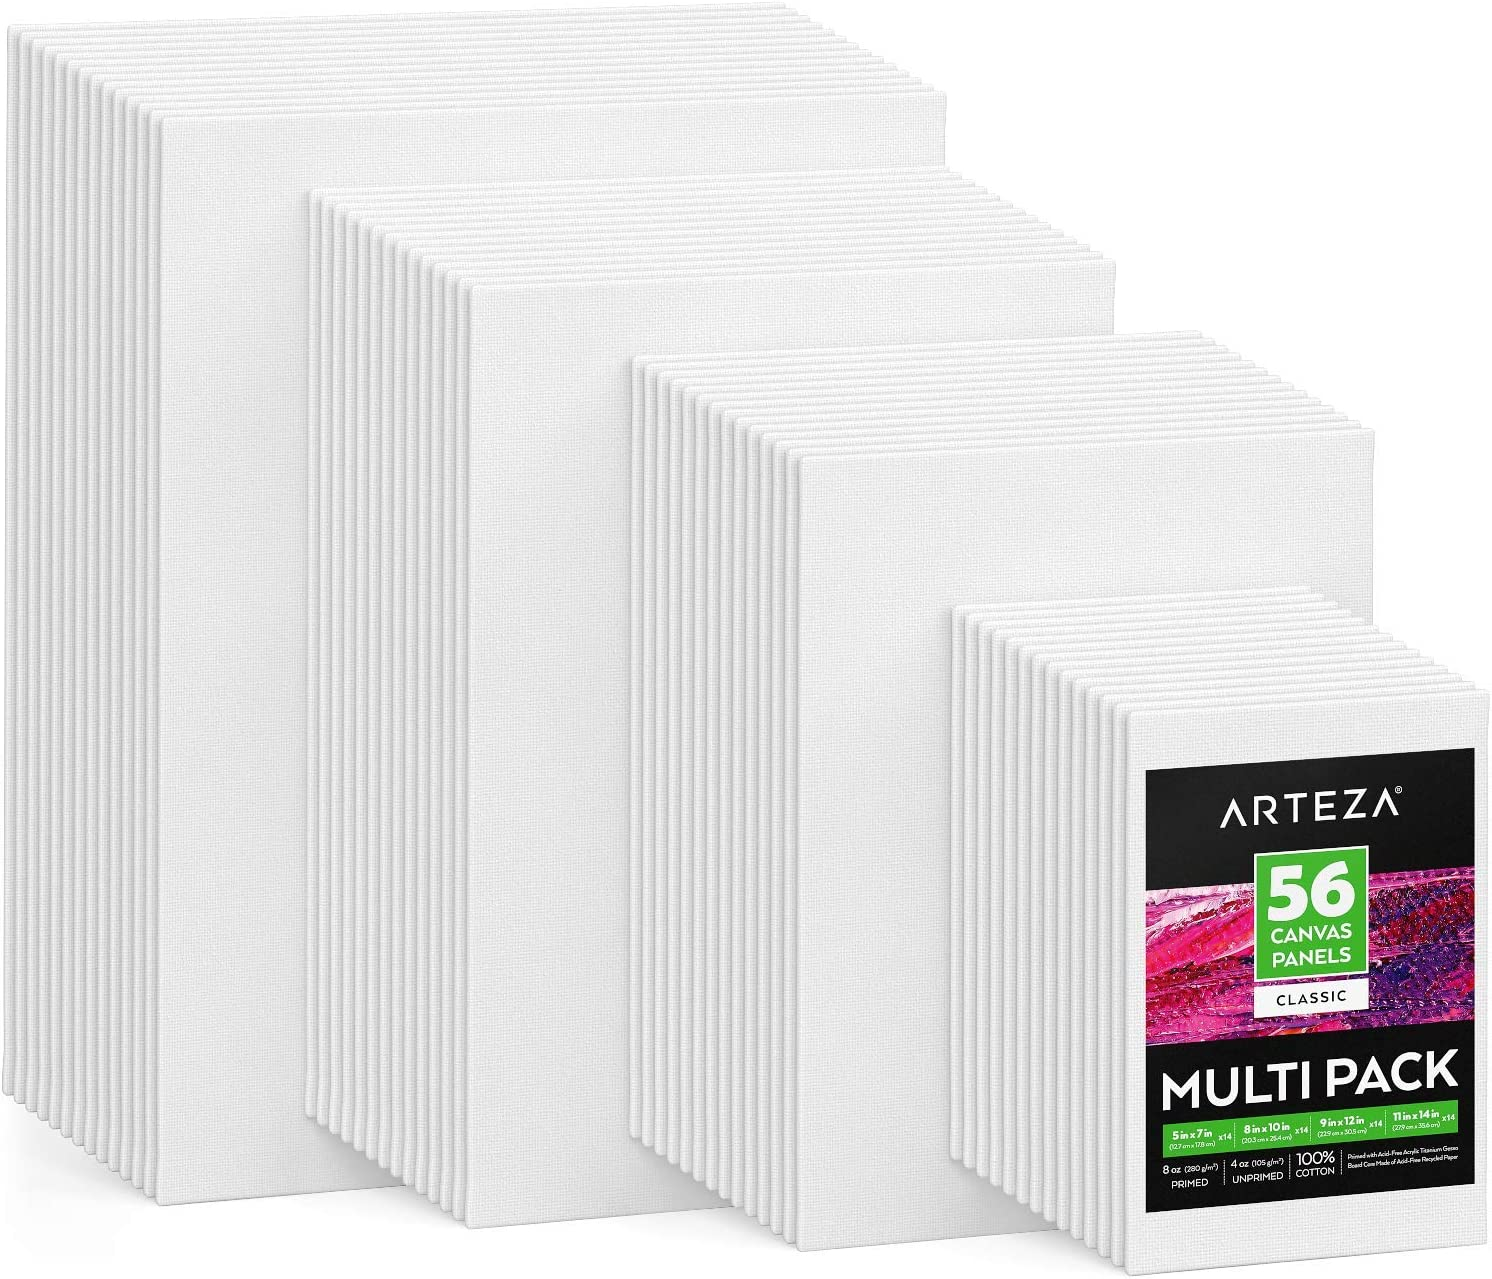 11x14 12x16 for Acrylic Set of 10 Oil 100/% Cotton 5x7 Other Wet or Dry Art Media for Artists 2 of Each Primed 16x20 8x10 Arteza Stretched White Blank Canvas Multi Pack